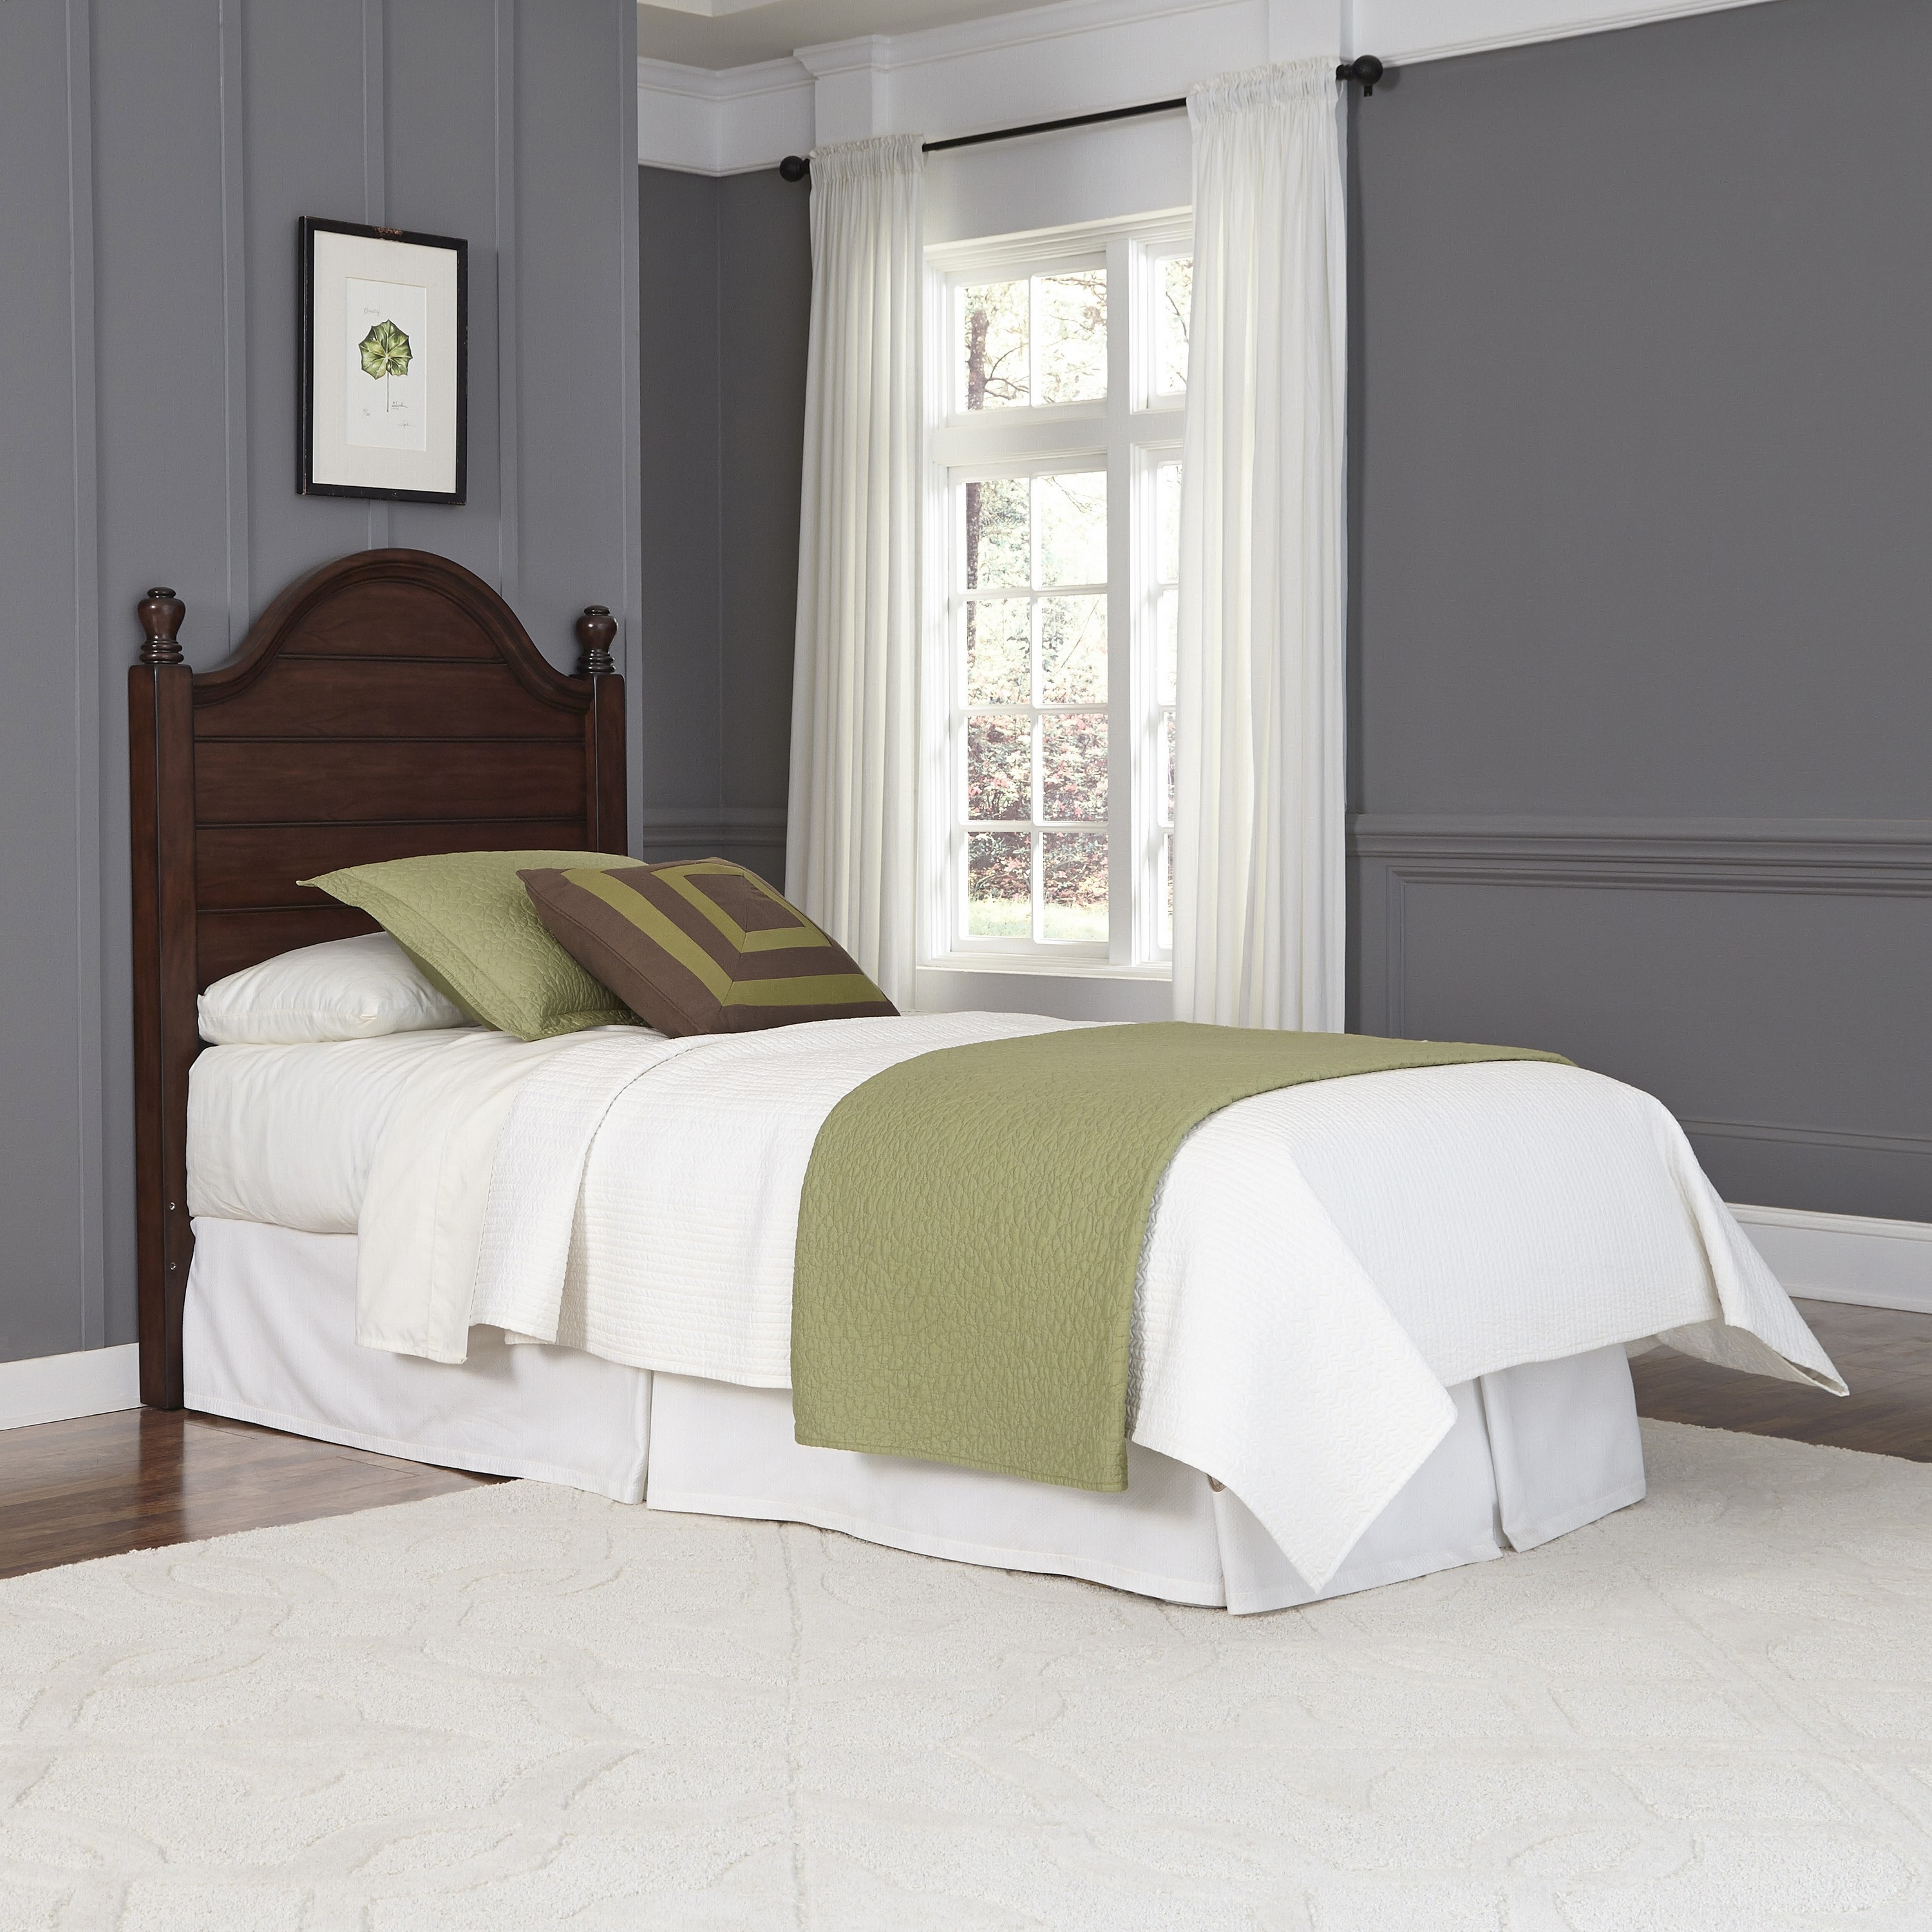 Country Style Headboards for Twin Beds